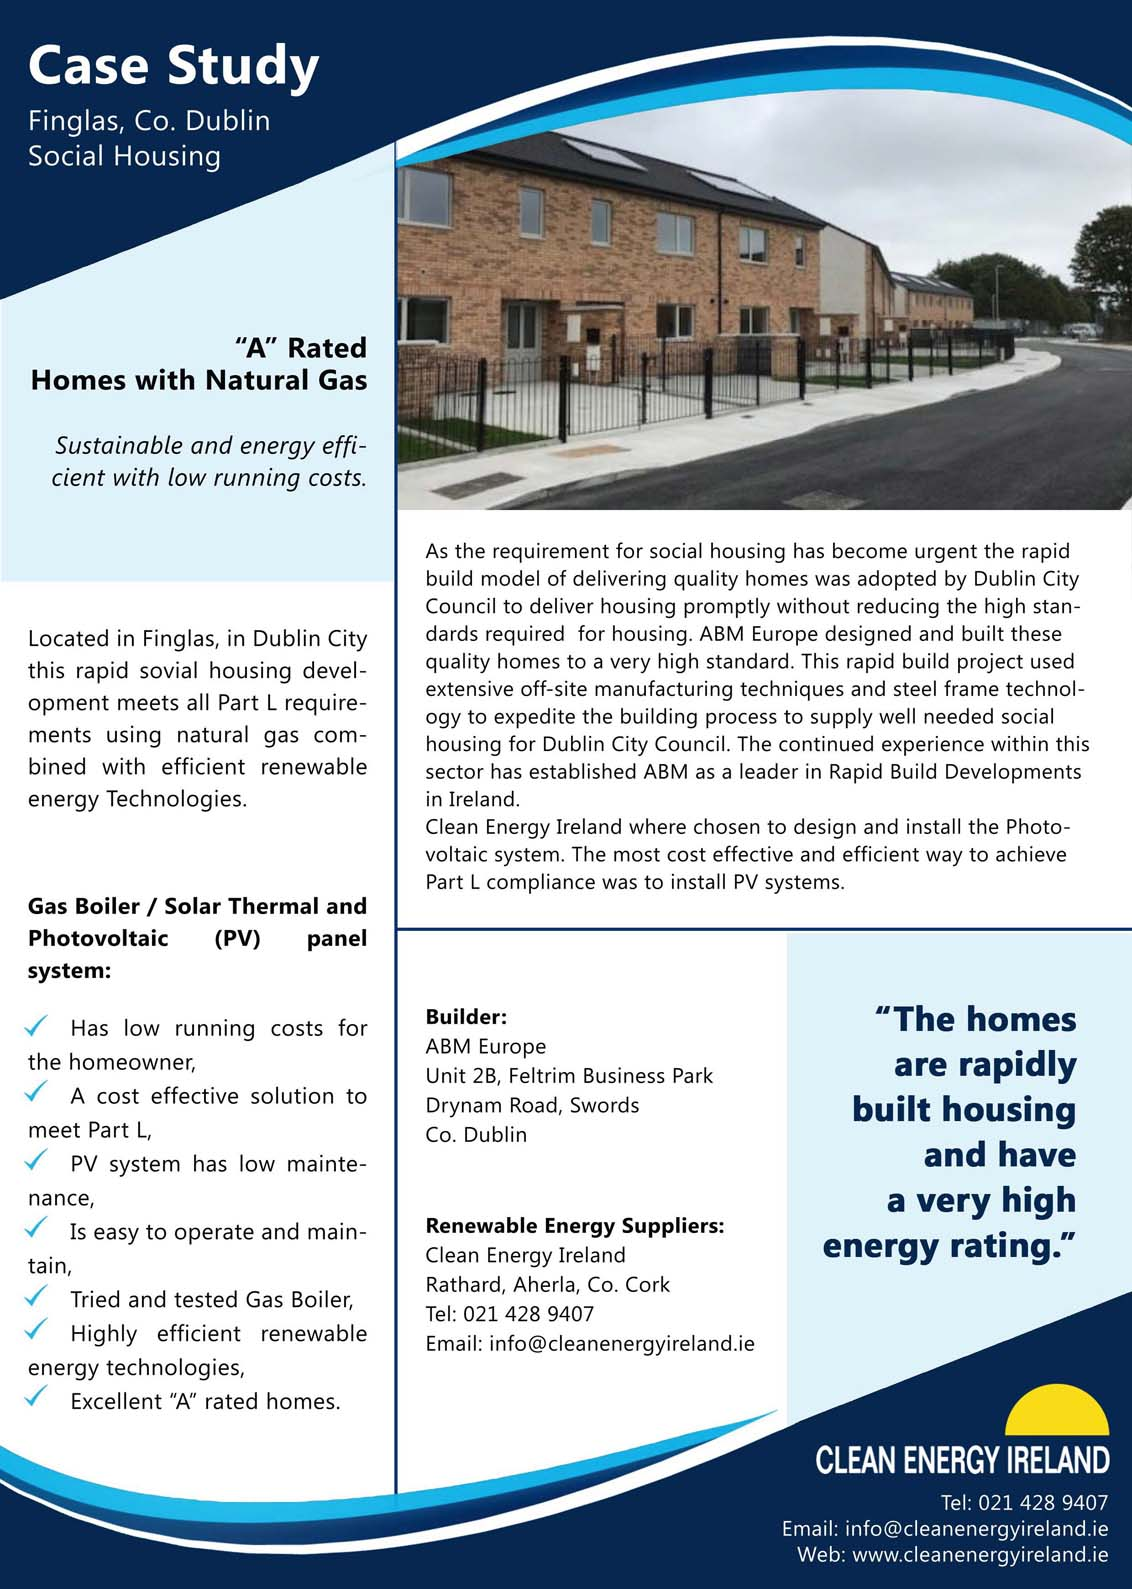 finglas case study